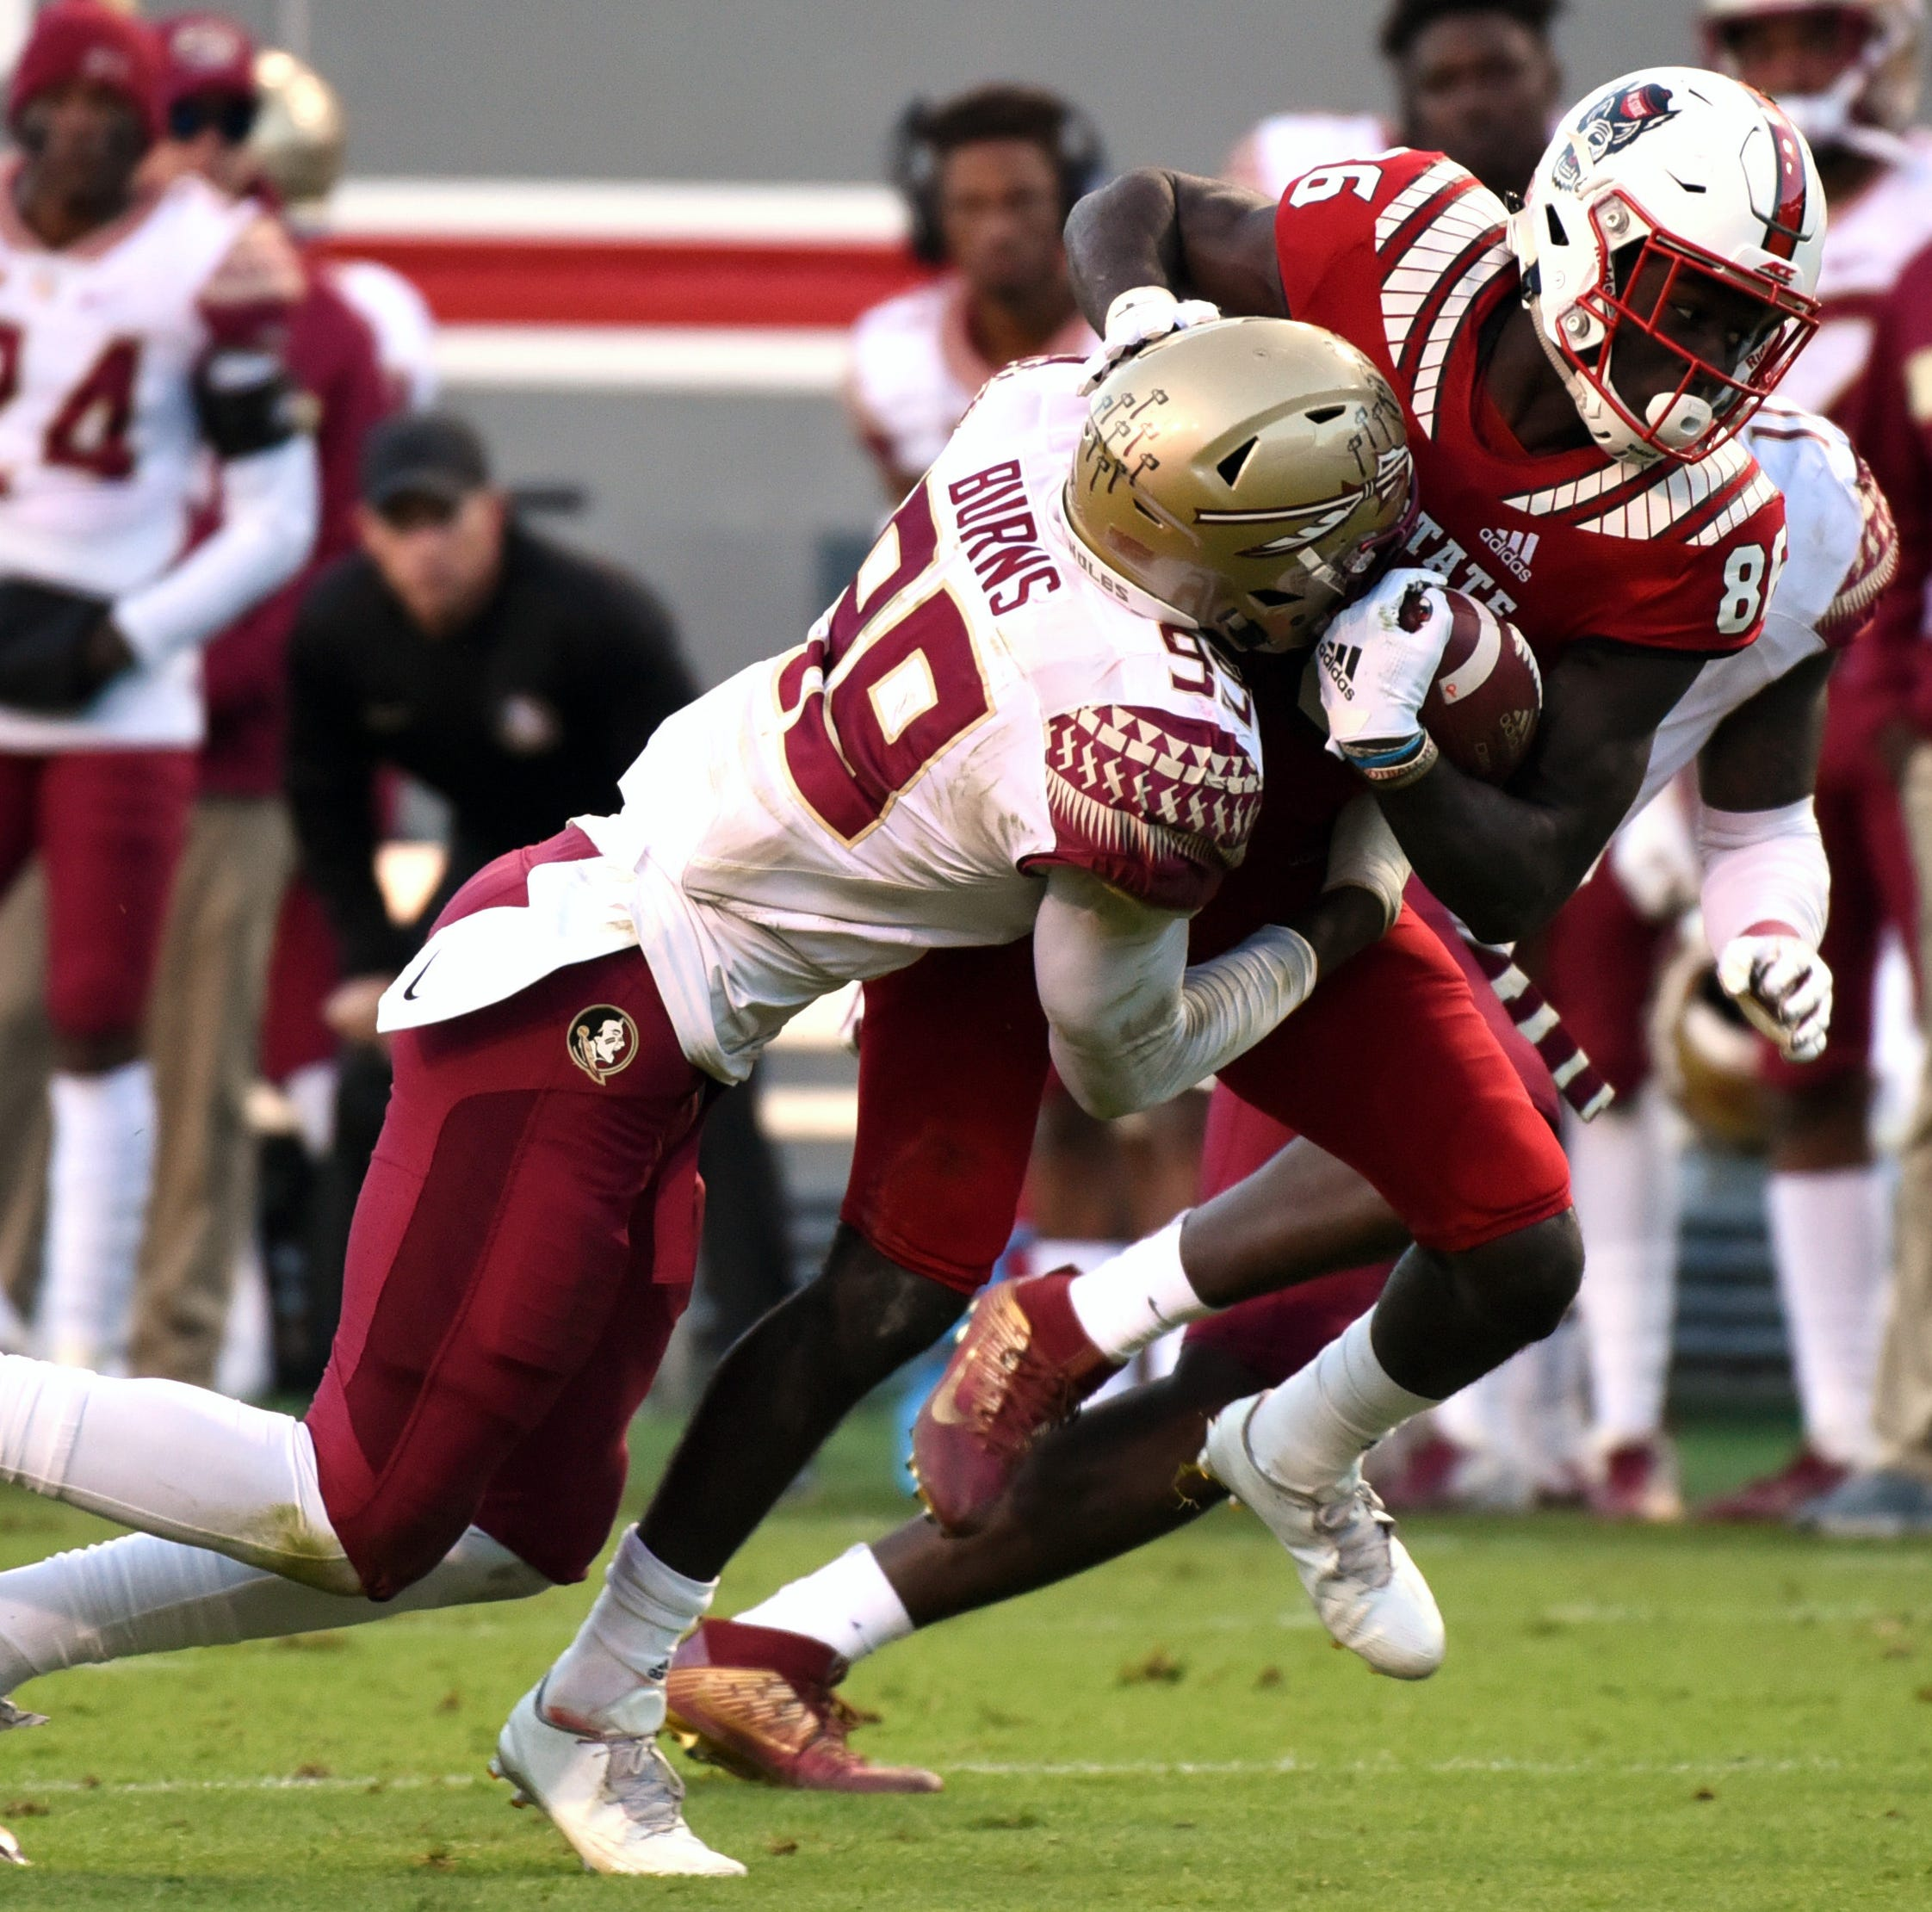 Florida State NFL Draft Preview: How high will Brian Burns go?